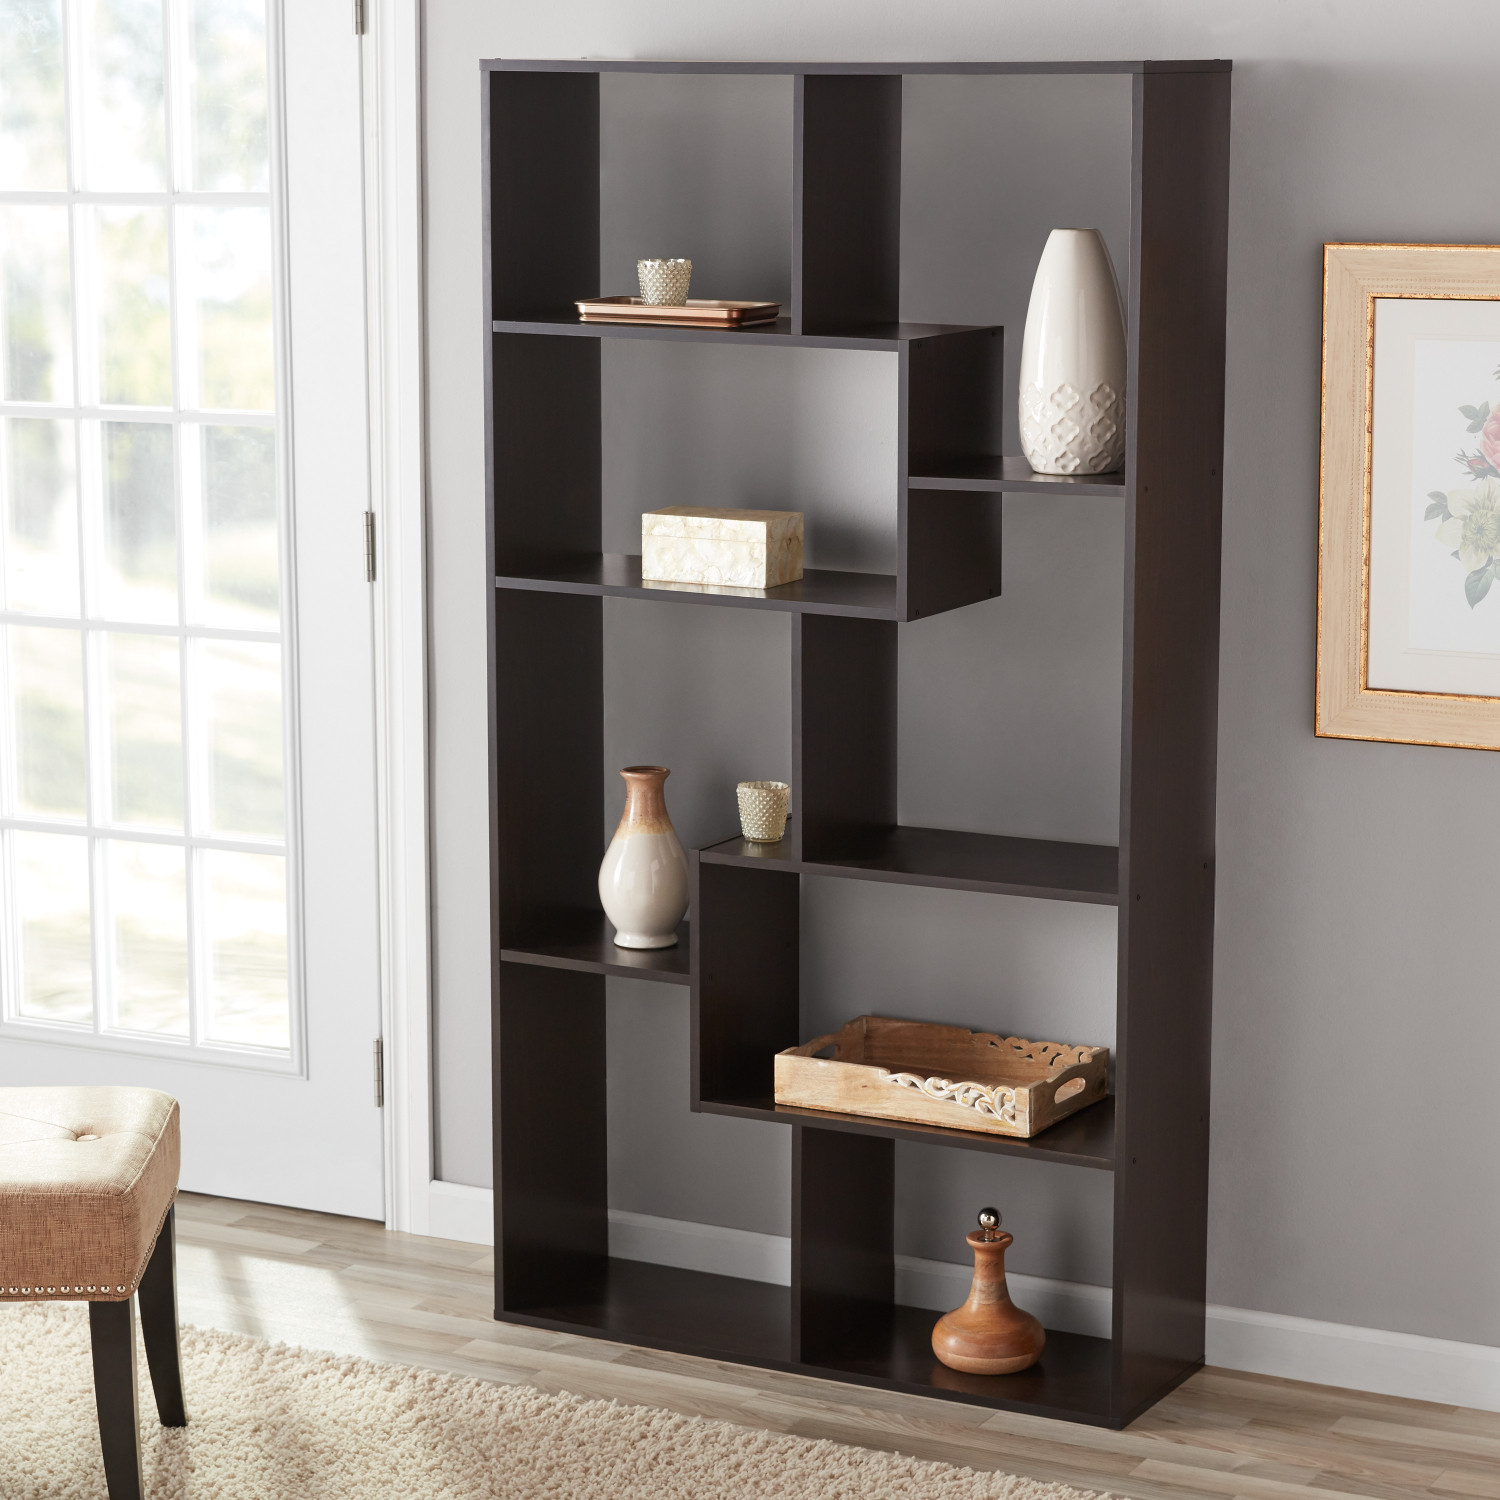 Details About Tall Bookcase Cubby Large Open Bookshelf Modern Cube 8 Shelf Display Decor Brown